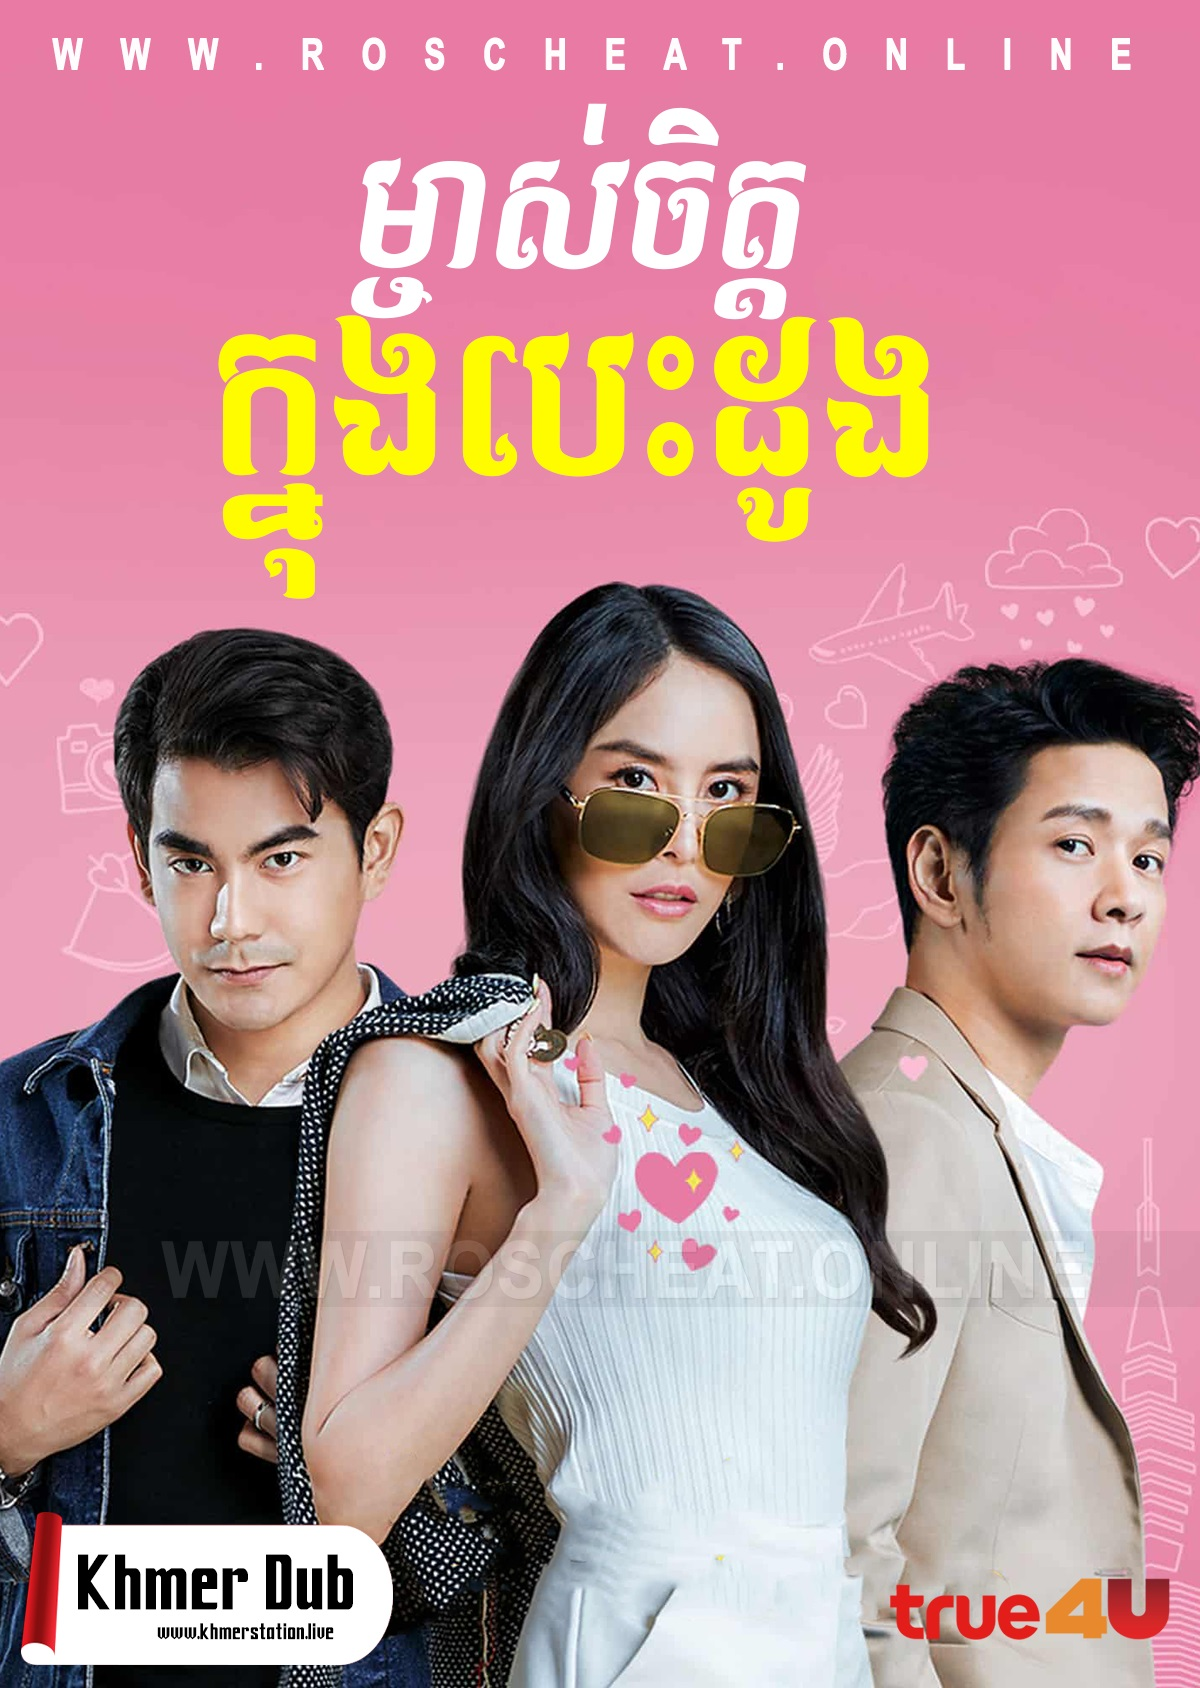 Mchas Chit Knung Besdong 2021 – Khmer Dub EP 23